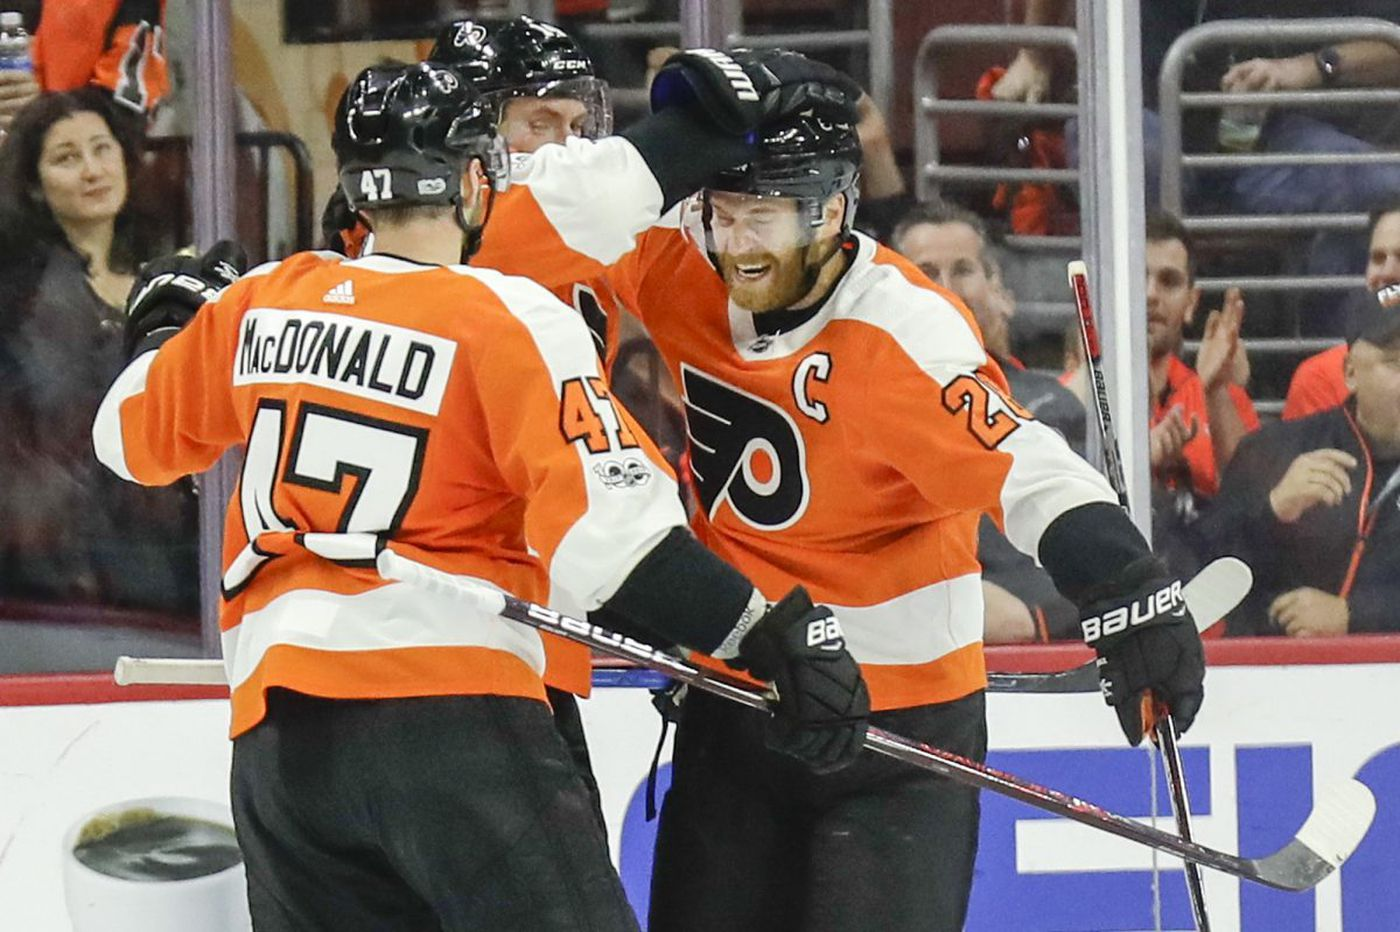 Flyers rout Capitals as Laughton, Couturier, Giroux net two goals each